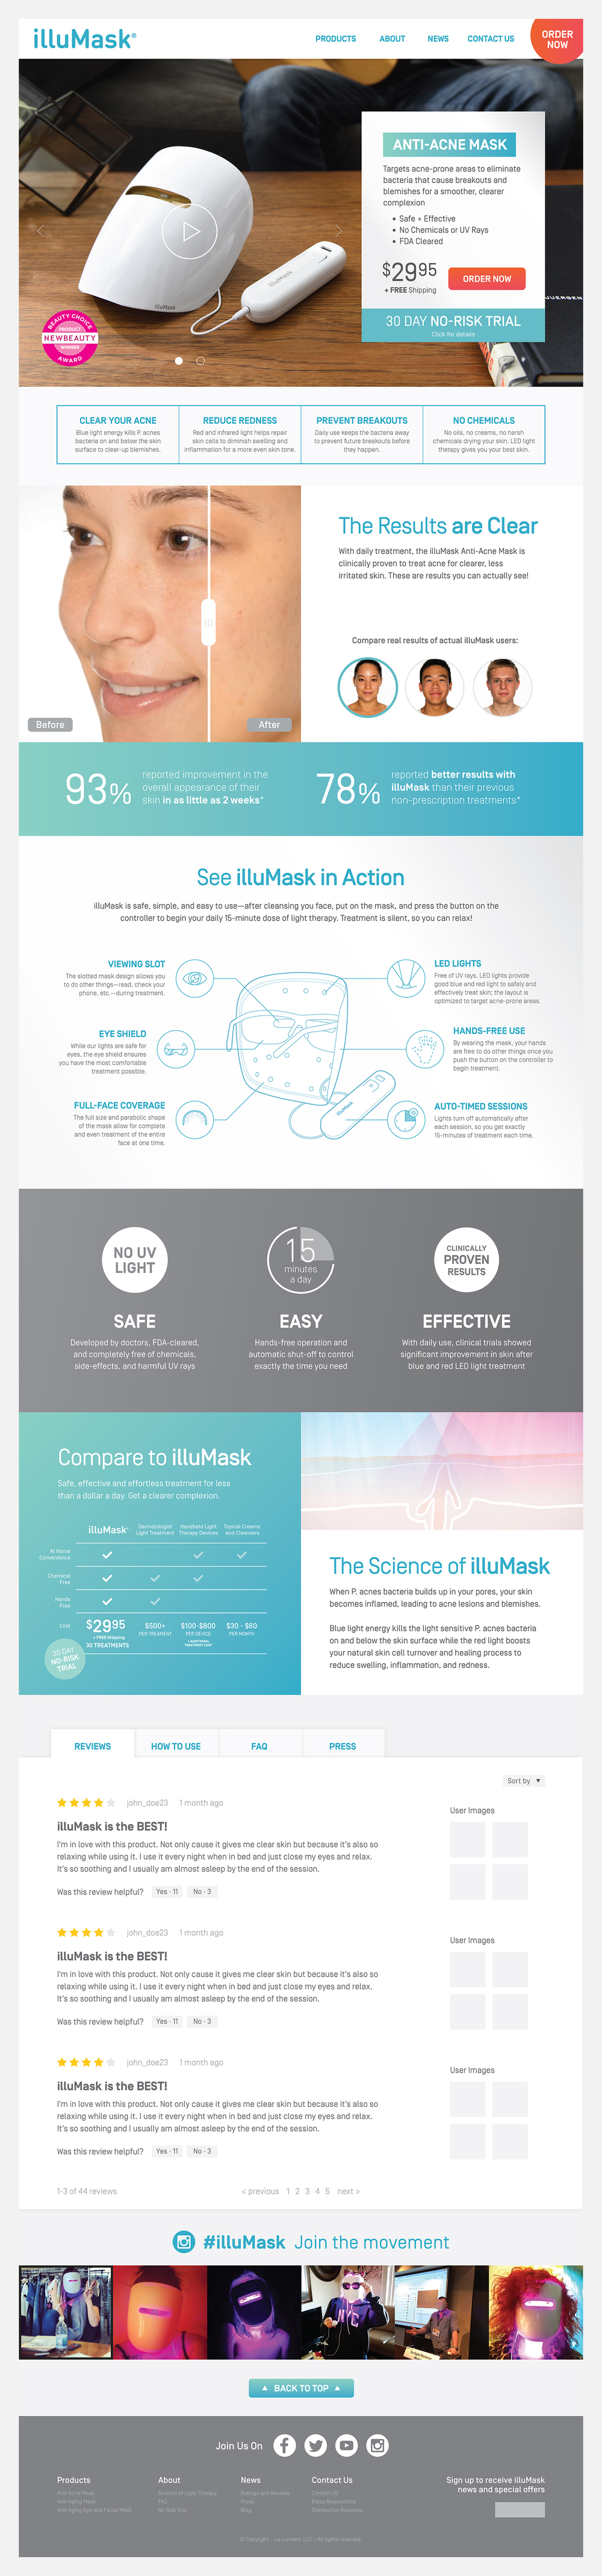 illuMask_HomePage_AcneProduct.jpg